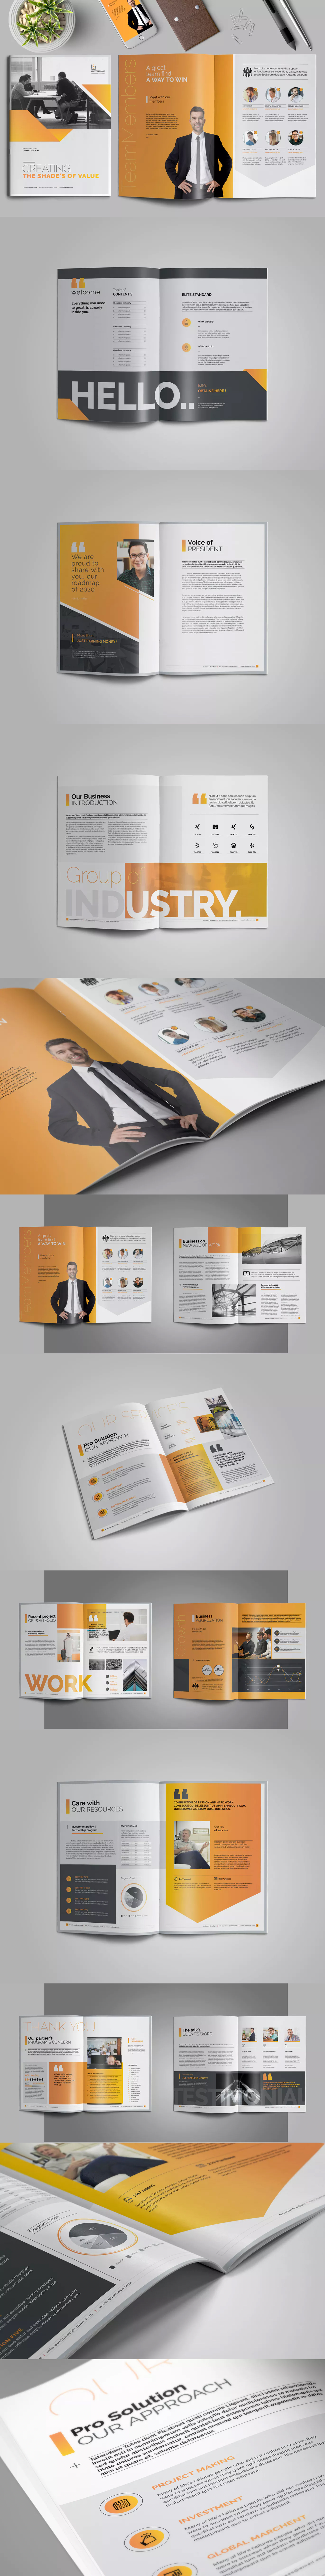 Business Brochure Template InDesign INDD A4 and US Letter Size ...